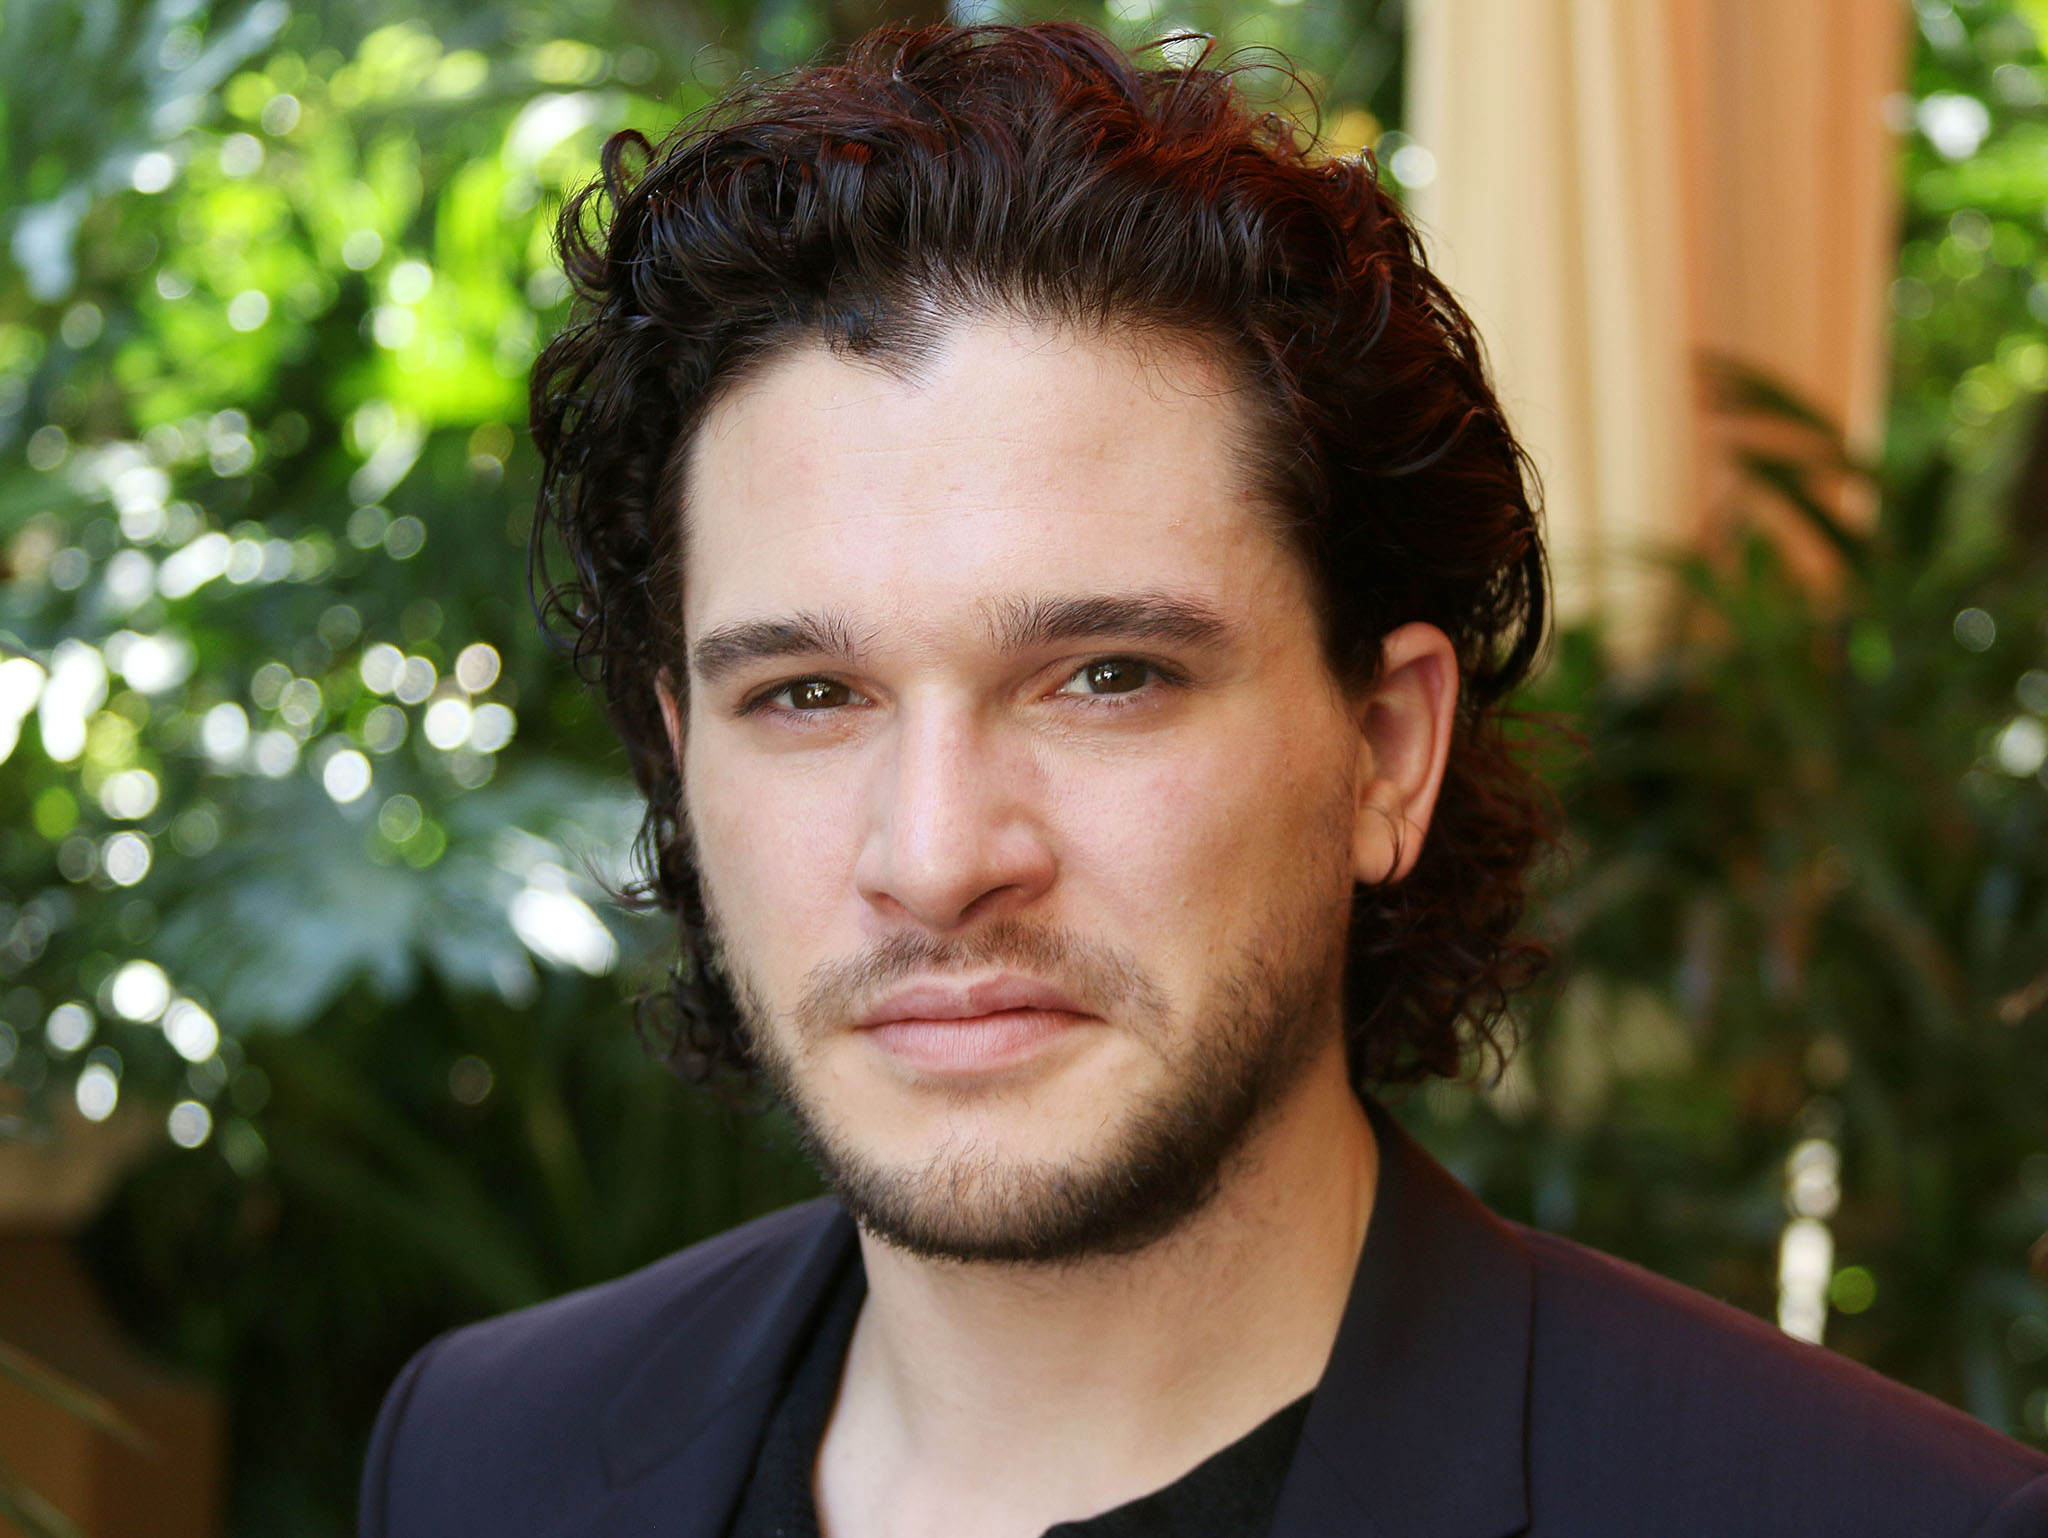 Kit Harington Just Admitted He Really Knows Nothing About His u0026#39;Game Of Thronesu0026#39; Character | The Huffington Post